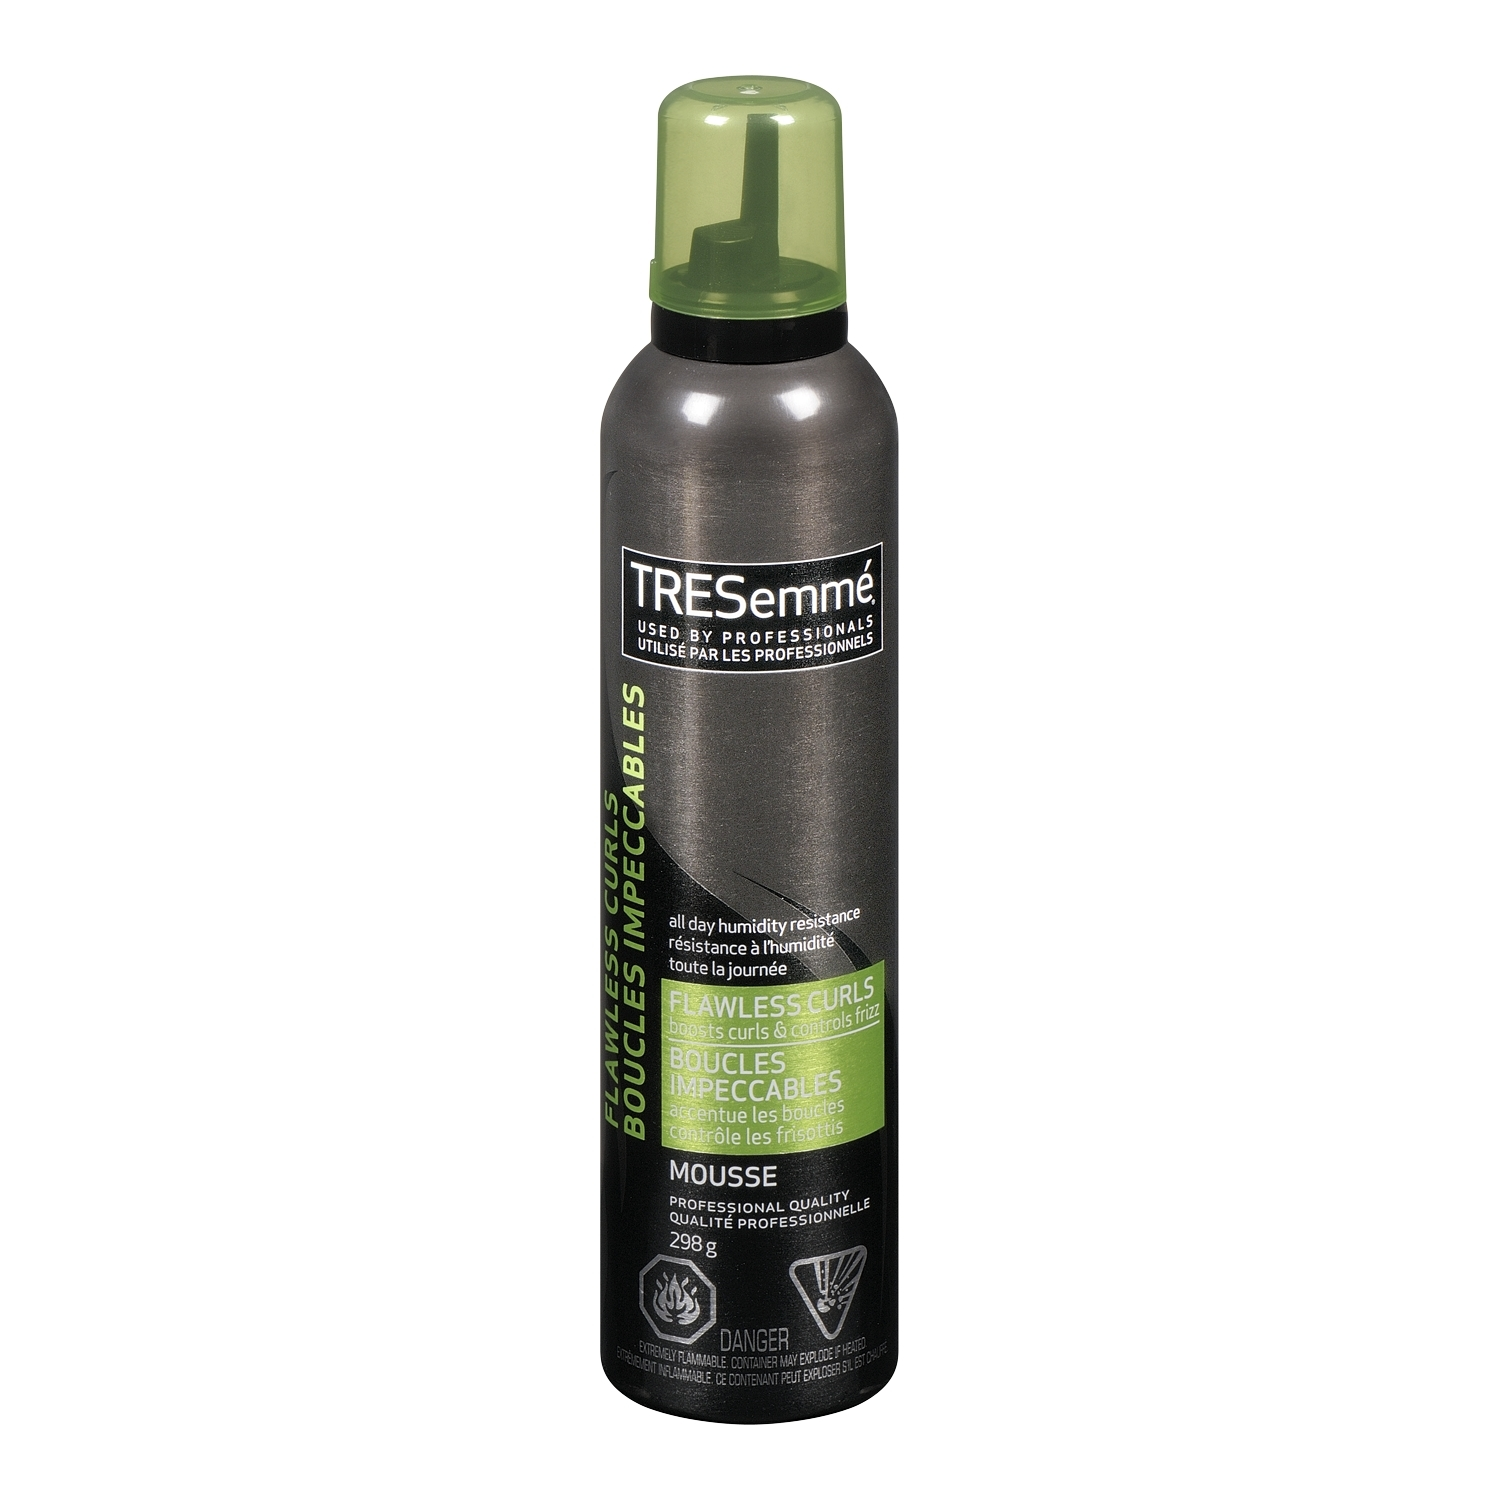 styling mousse for hair tresemm 233 174 flawless curls mousse reviews in hair care 1408